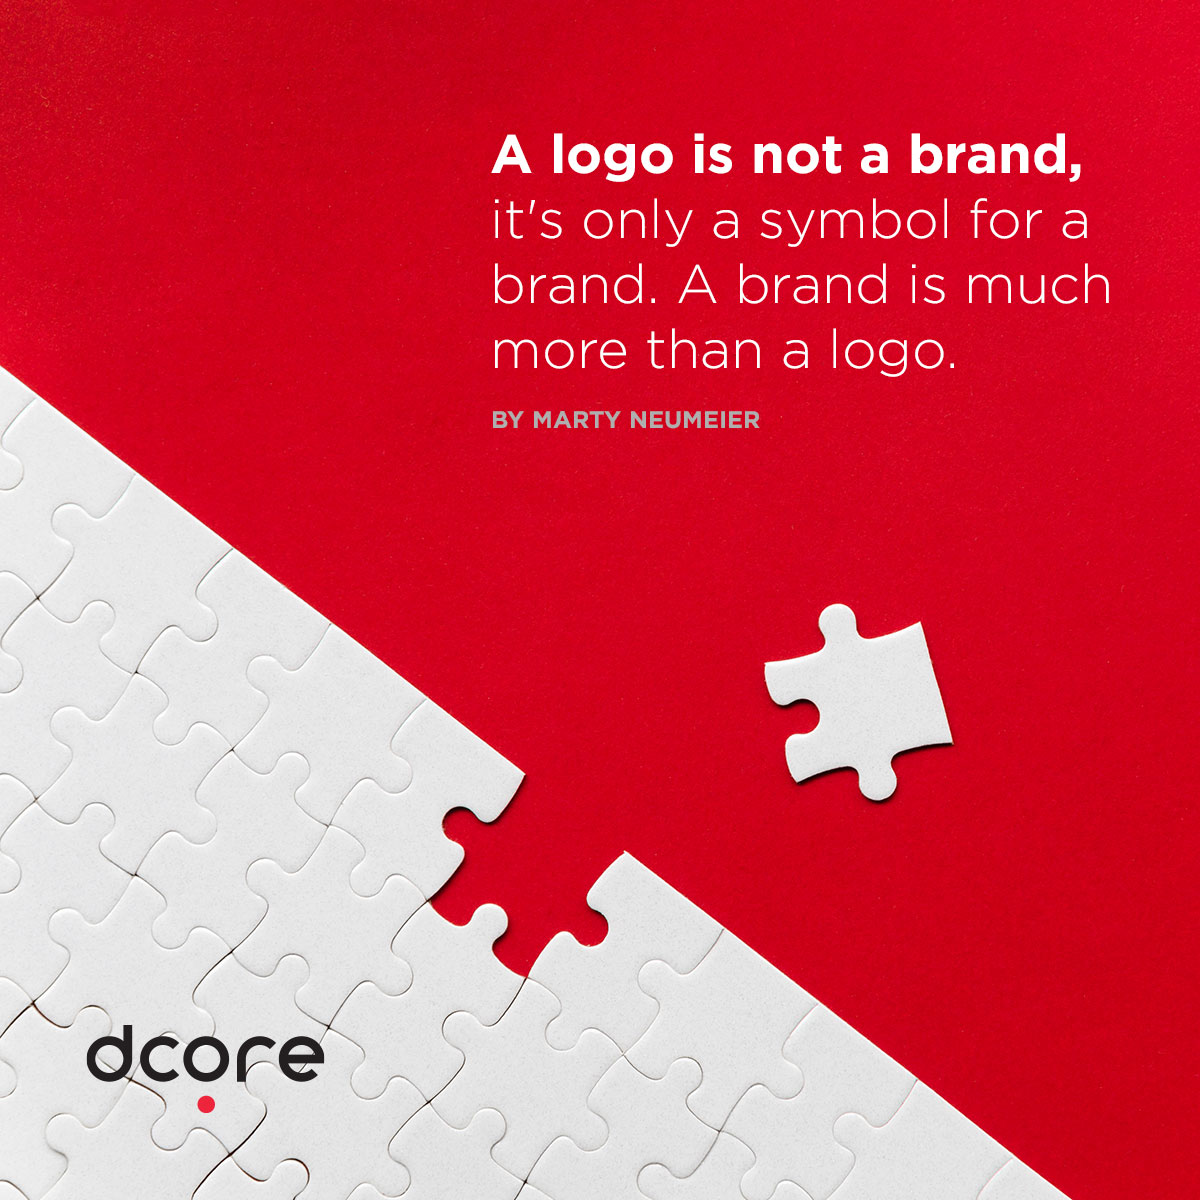 logo design quotes by MARTY NEUMEIER